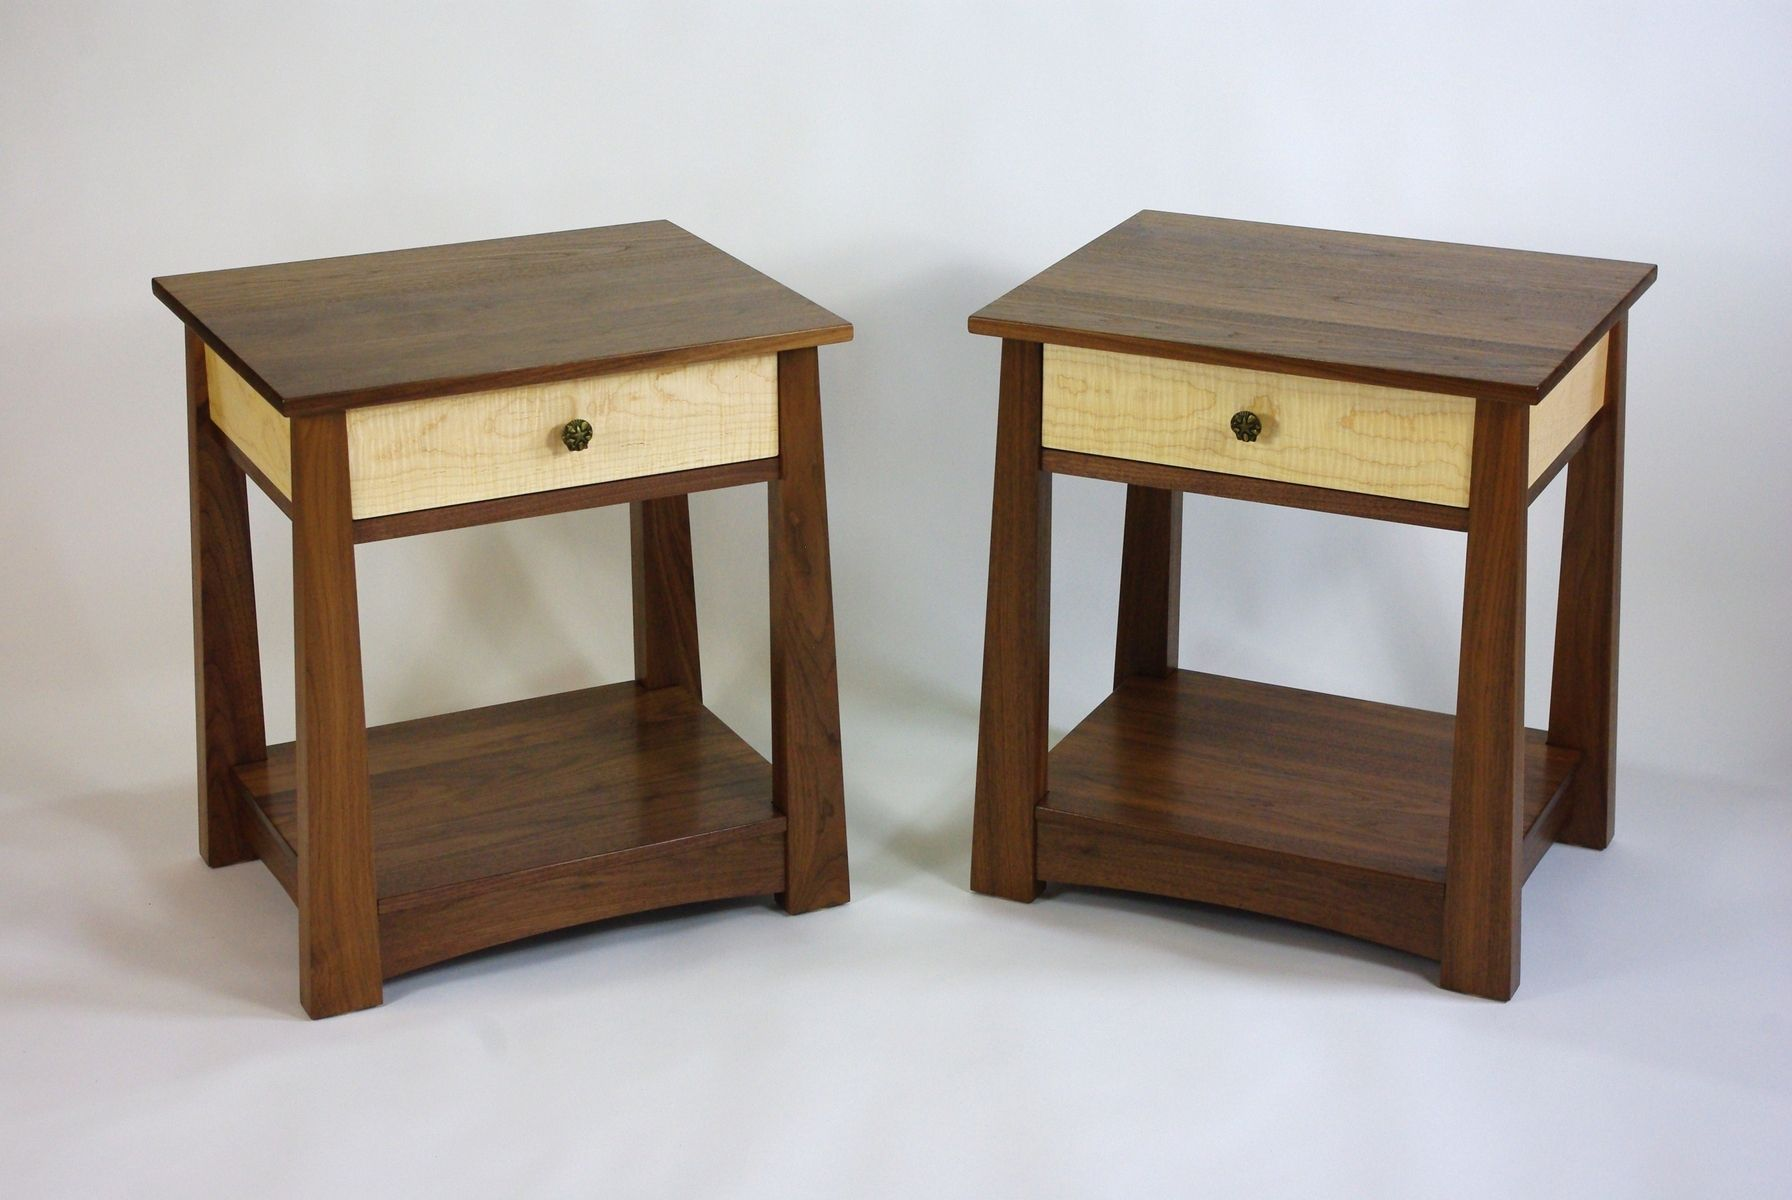 Black Walnut And Curly Maple Dresser And Nightstands